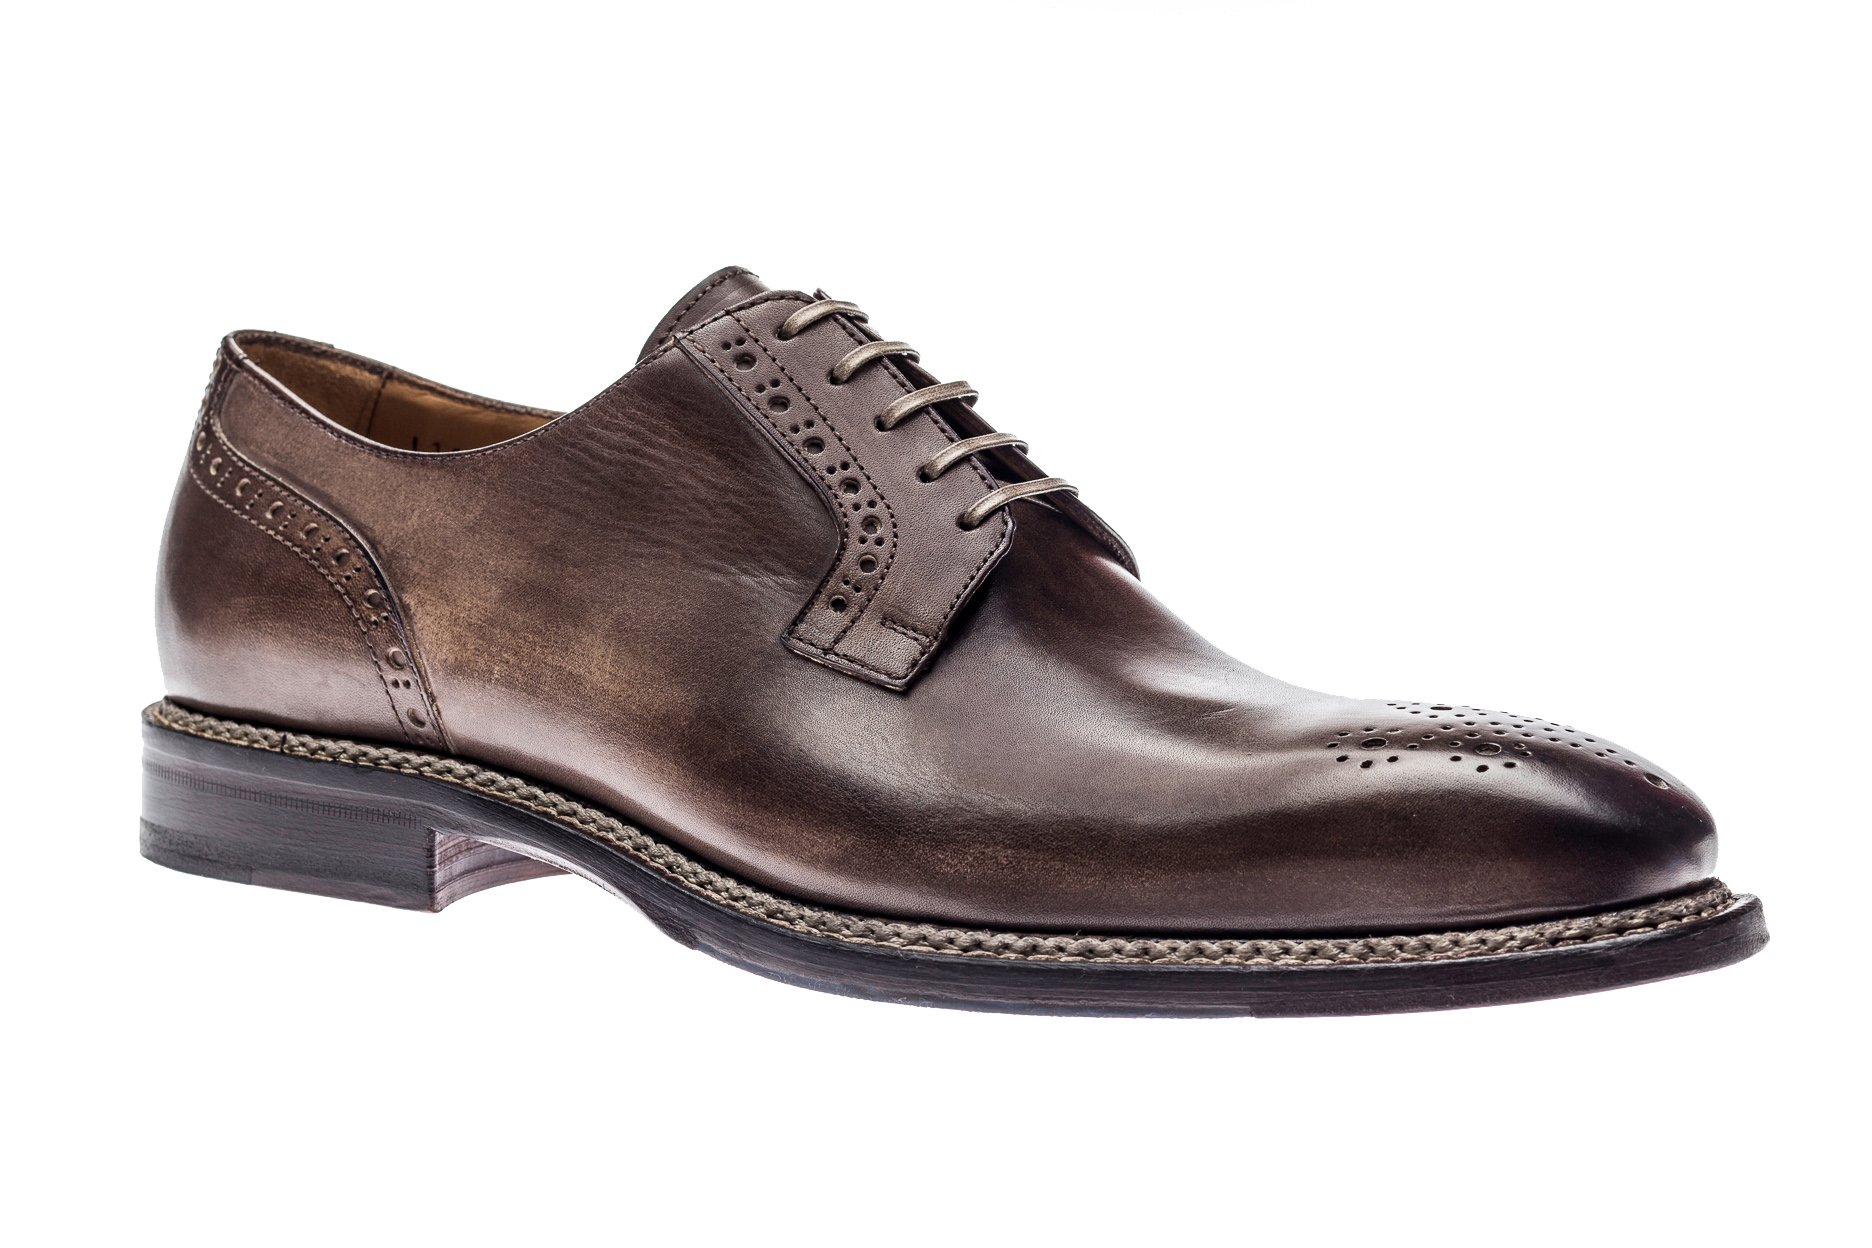 Jose Real Shoes Nordve Collection | Cafe | Mens Oxford Brown Genuine Real Italian Leather Dress Shoe | Size EU 41